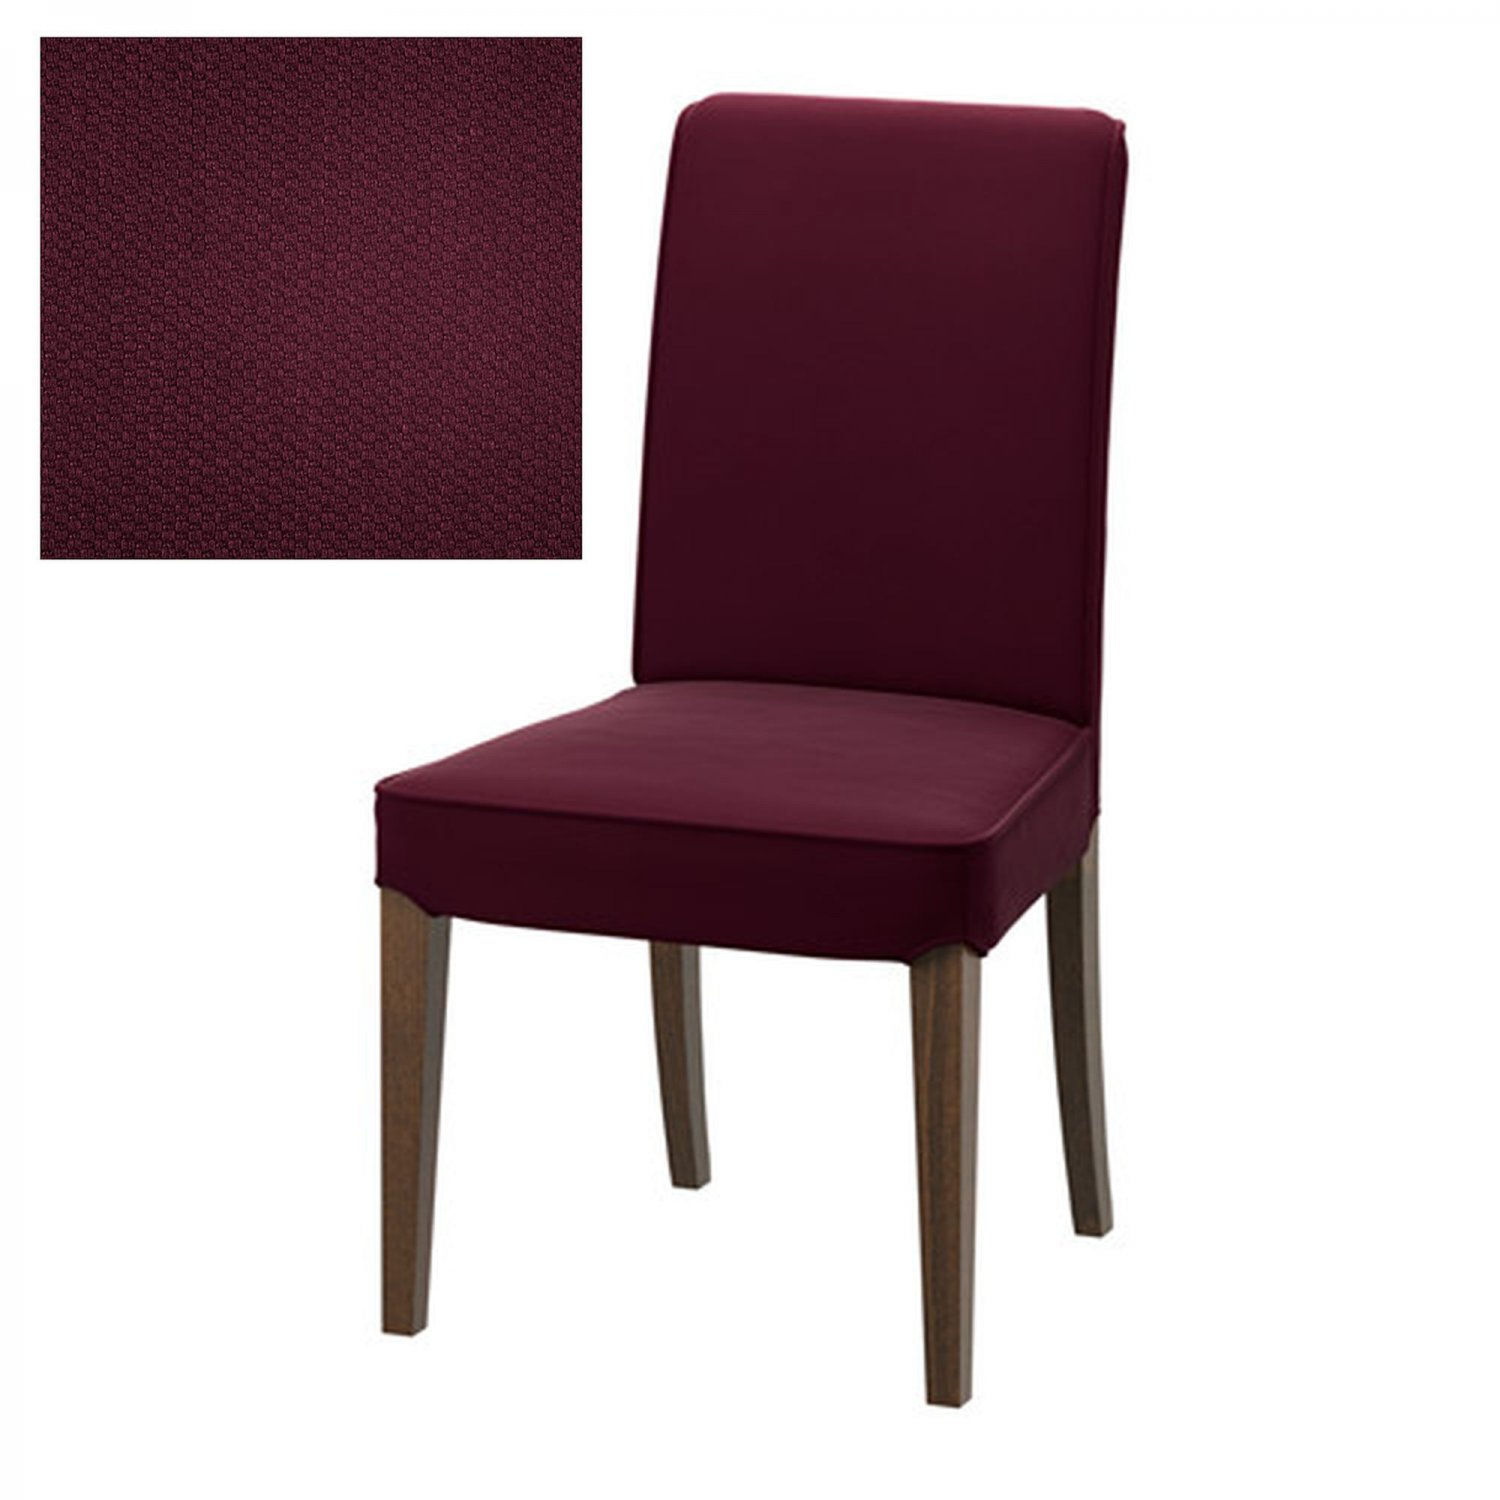 ikea henriksdal chair slipcover cover 21 54cm dansbo red lilac lilac red purple. Black Bedroom Furniture Sets. Home Design Ideas